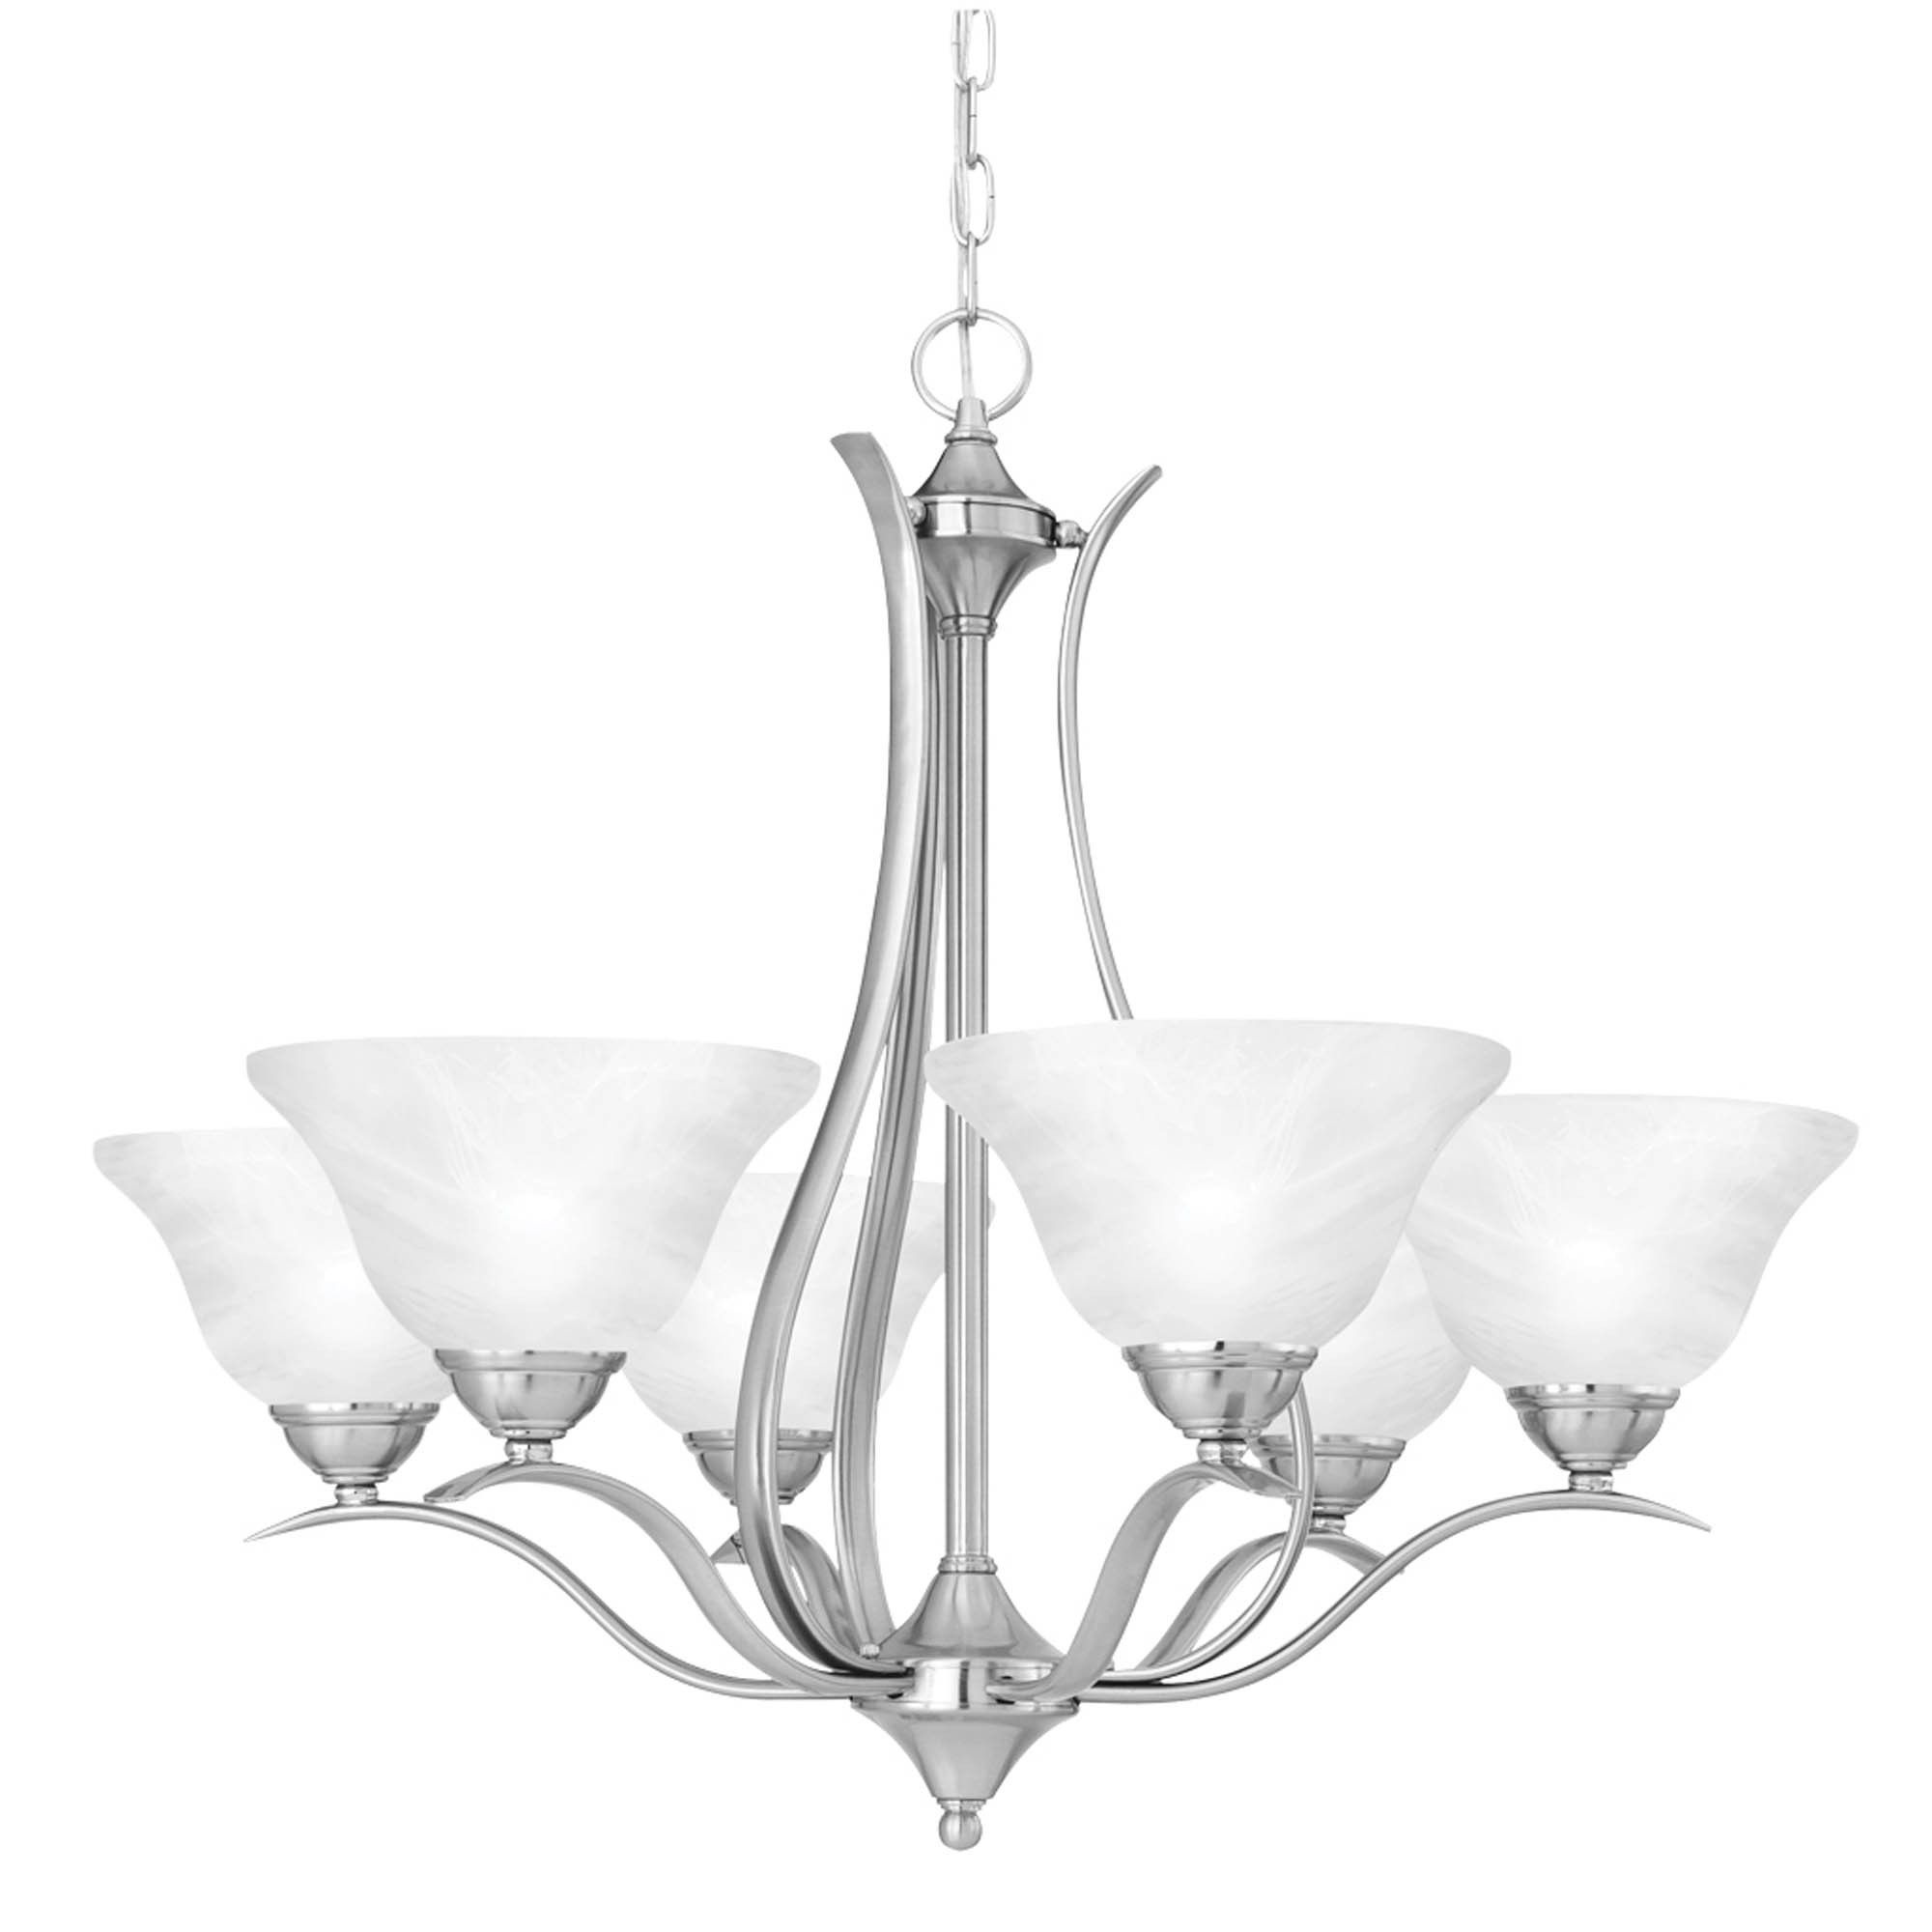 Prestige 6 light chandelier in brushed nickel finish chandeliers this beautiful prestige chandelier brushed nickel by elk lighting group is the perfect addition to brighten up your home material metalglass finish arubaitofo Choice Image